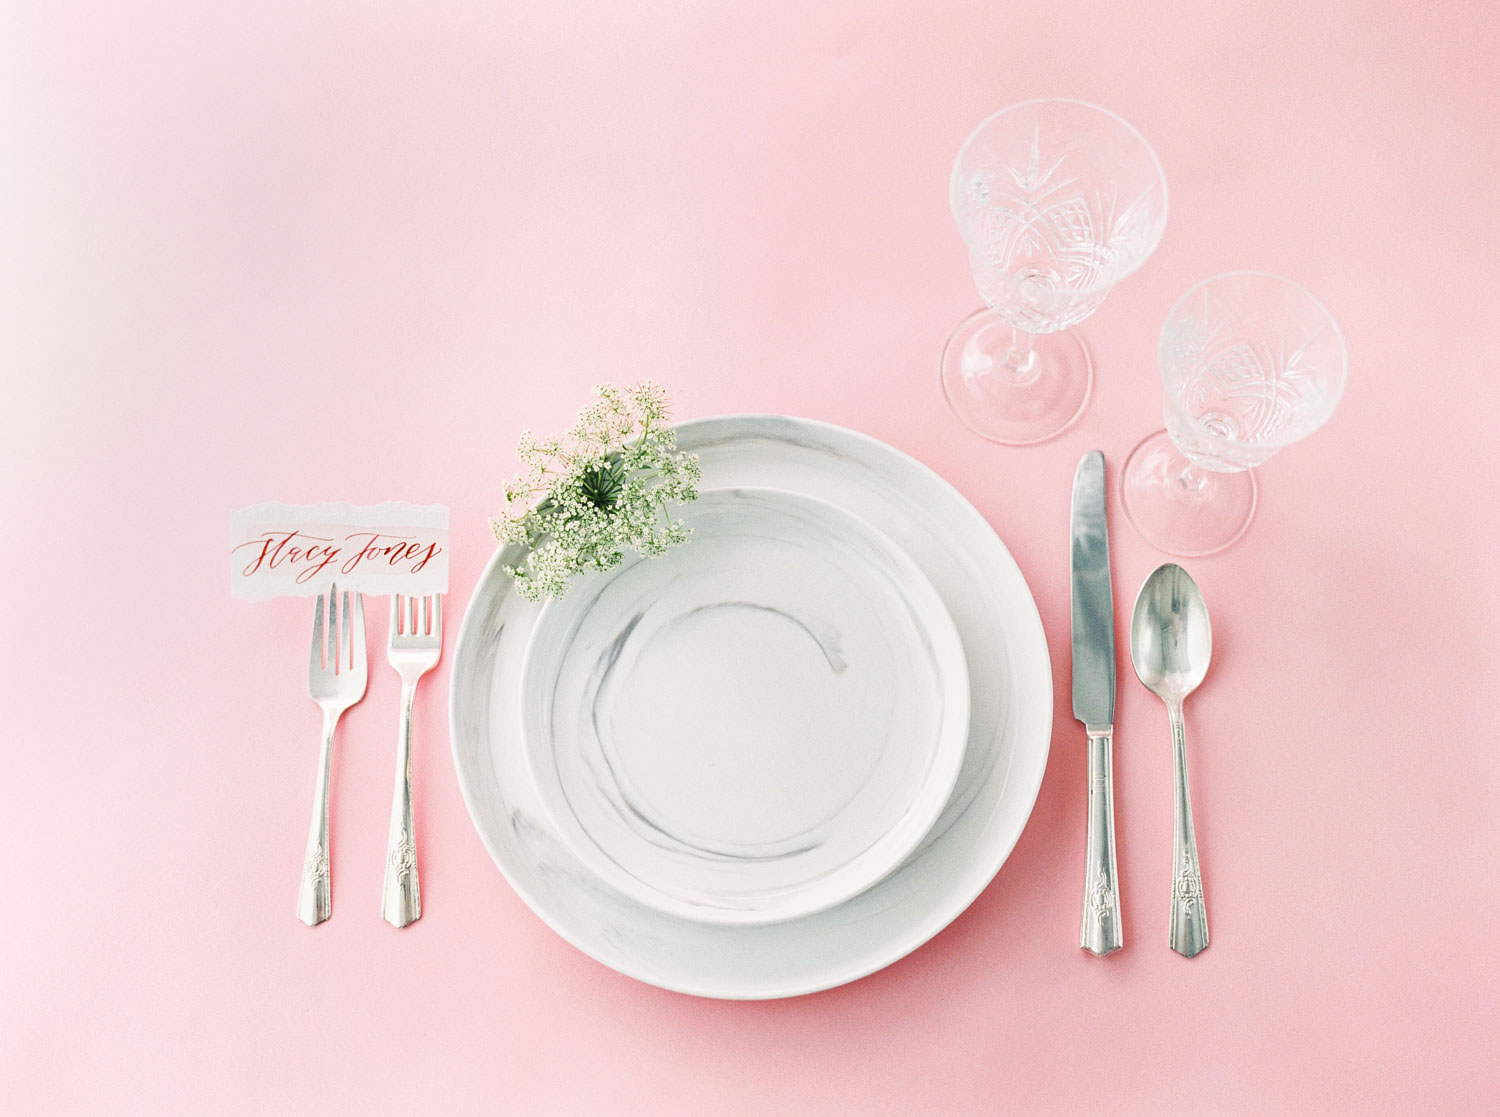 Wedding place setting with menu escort card on hand torn paper and clear glassware with marble plates, Pink backdrop wedding editorial on medium format Contax 645 Fuji 400h film by Cavin Elizabeth Photography